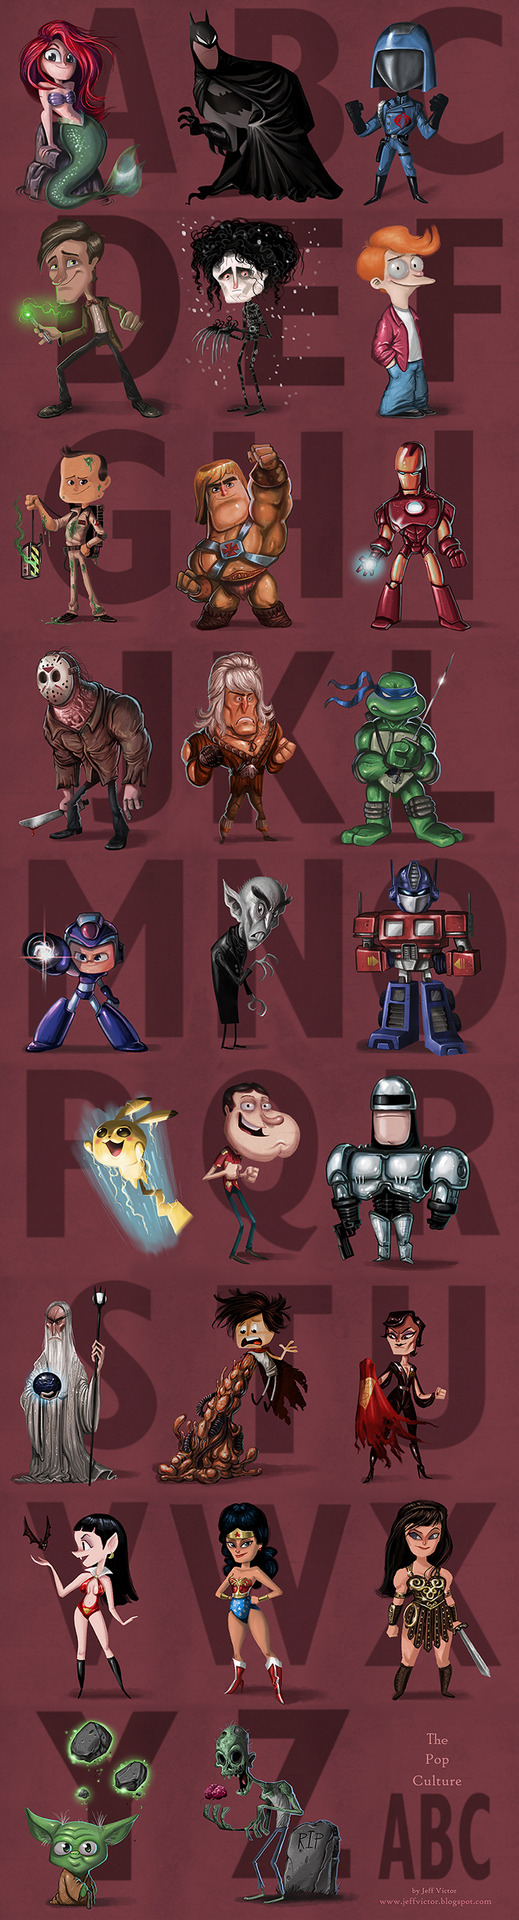 the-ultimate-pop-culture-abcs-by-jeff-victor.jpg